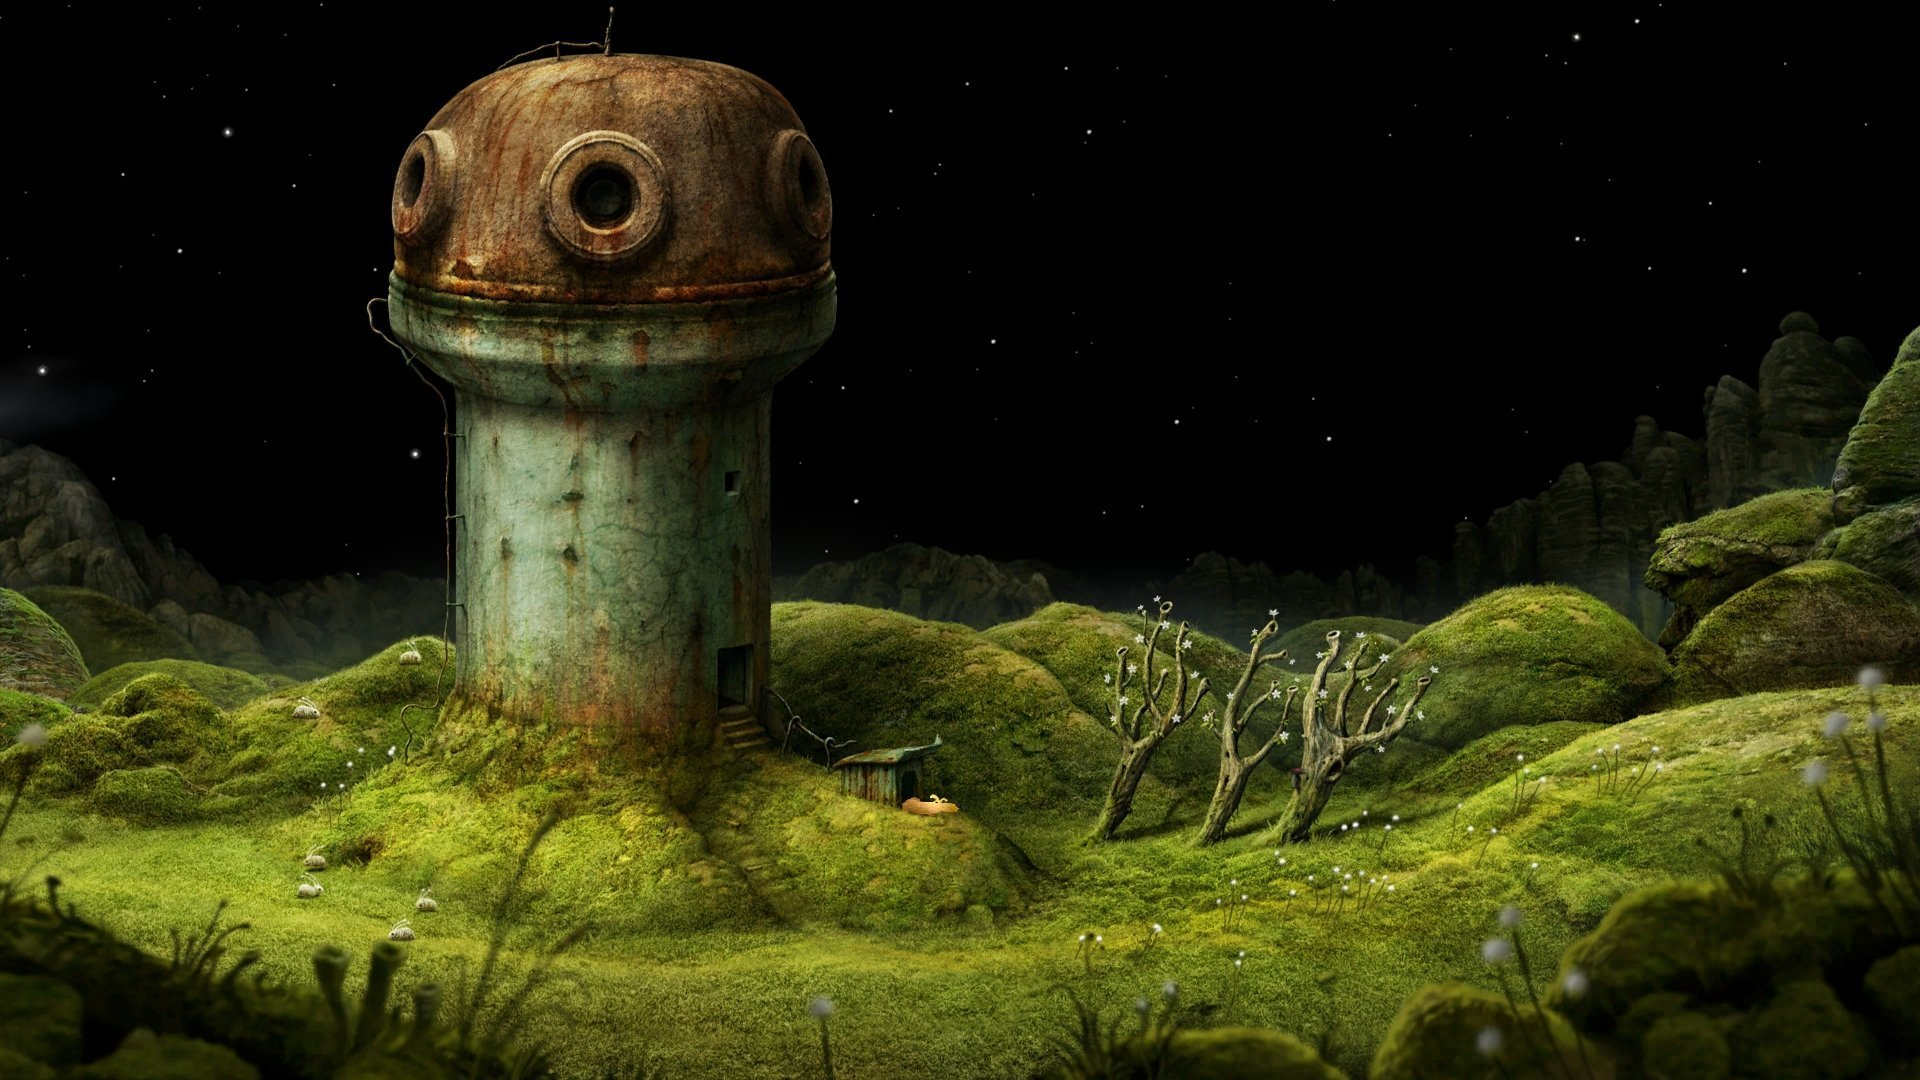 Captura de Samorost 3 d'Amanita Design